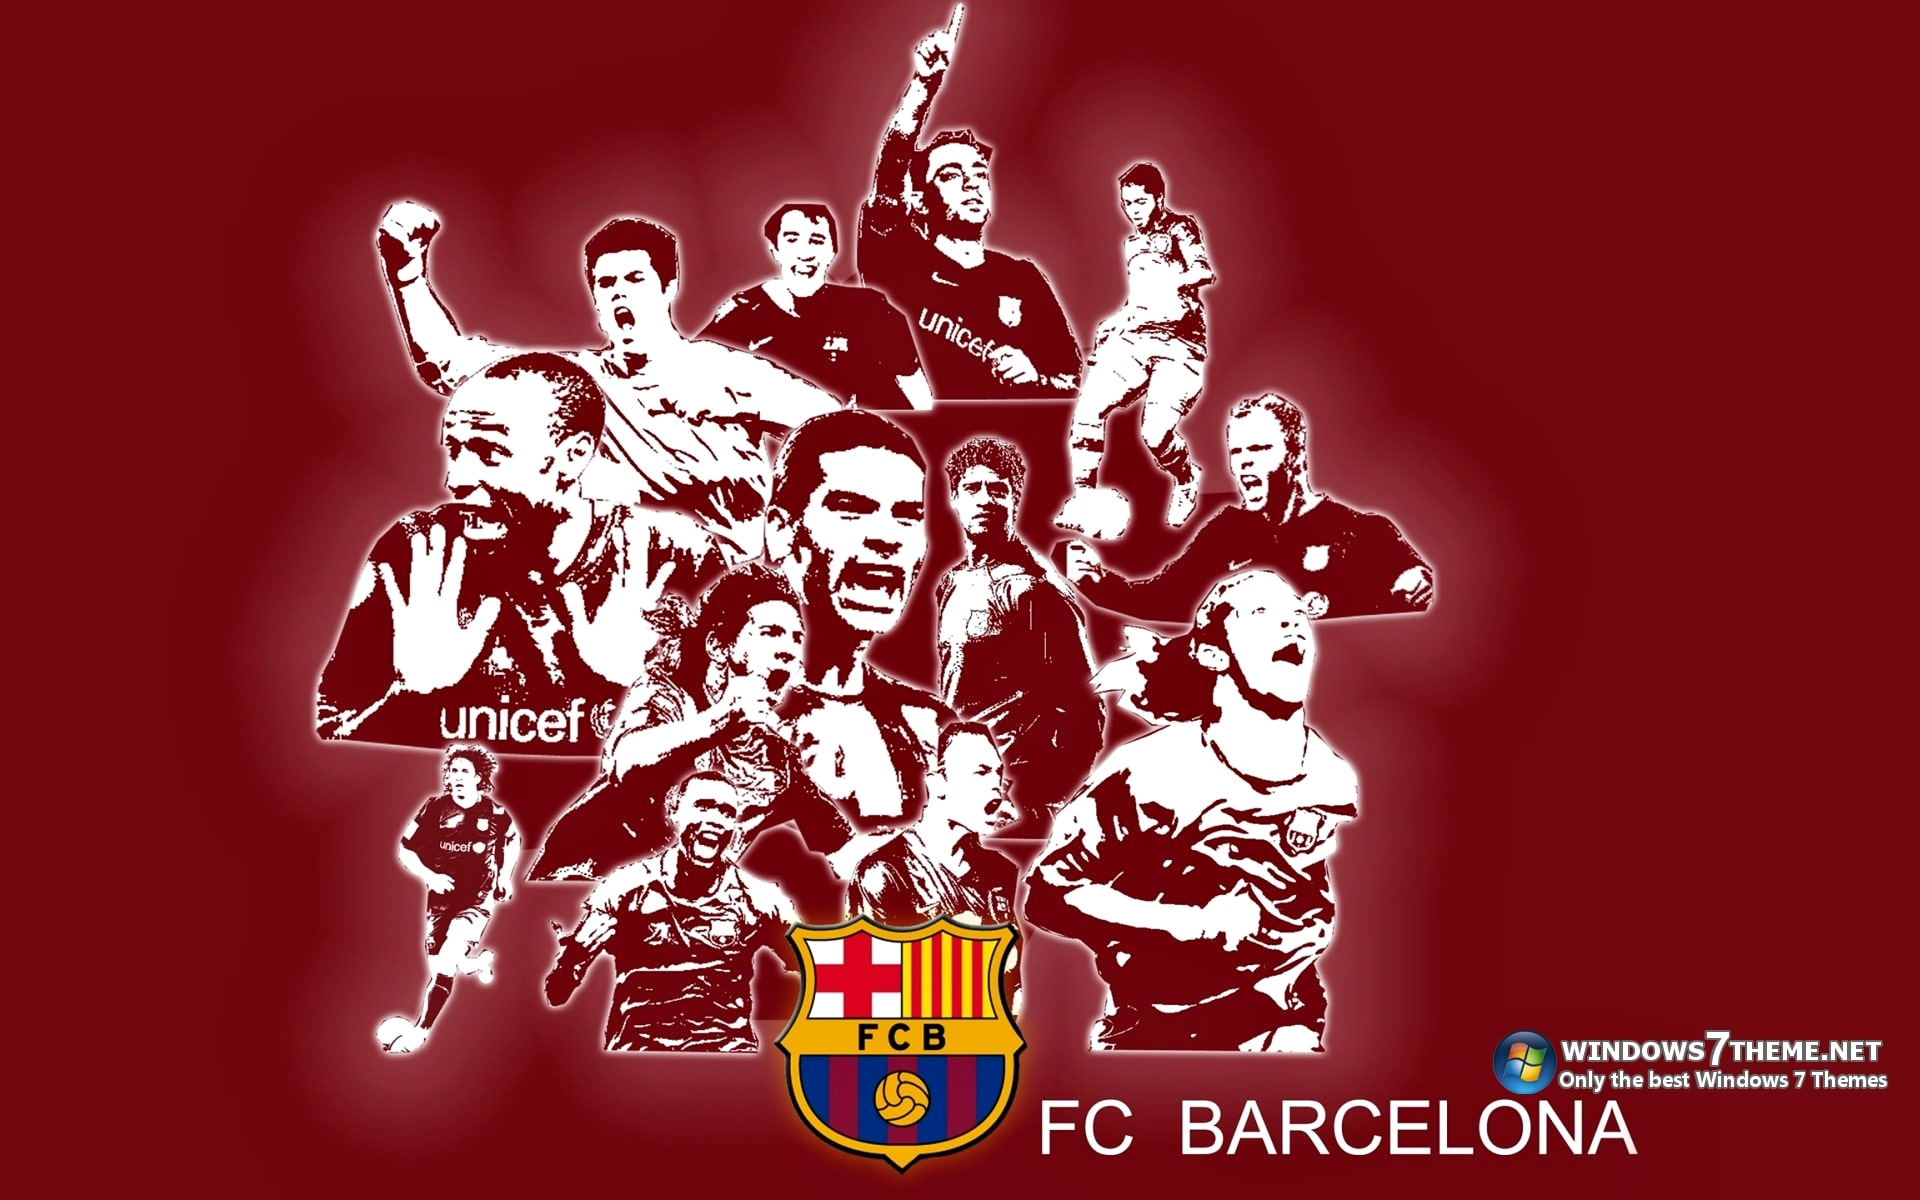 FC Barcelona Theme - Download